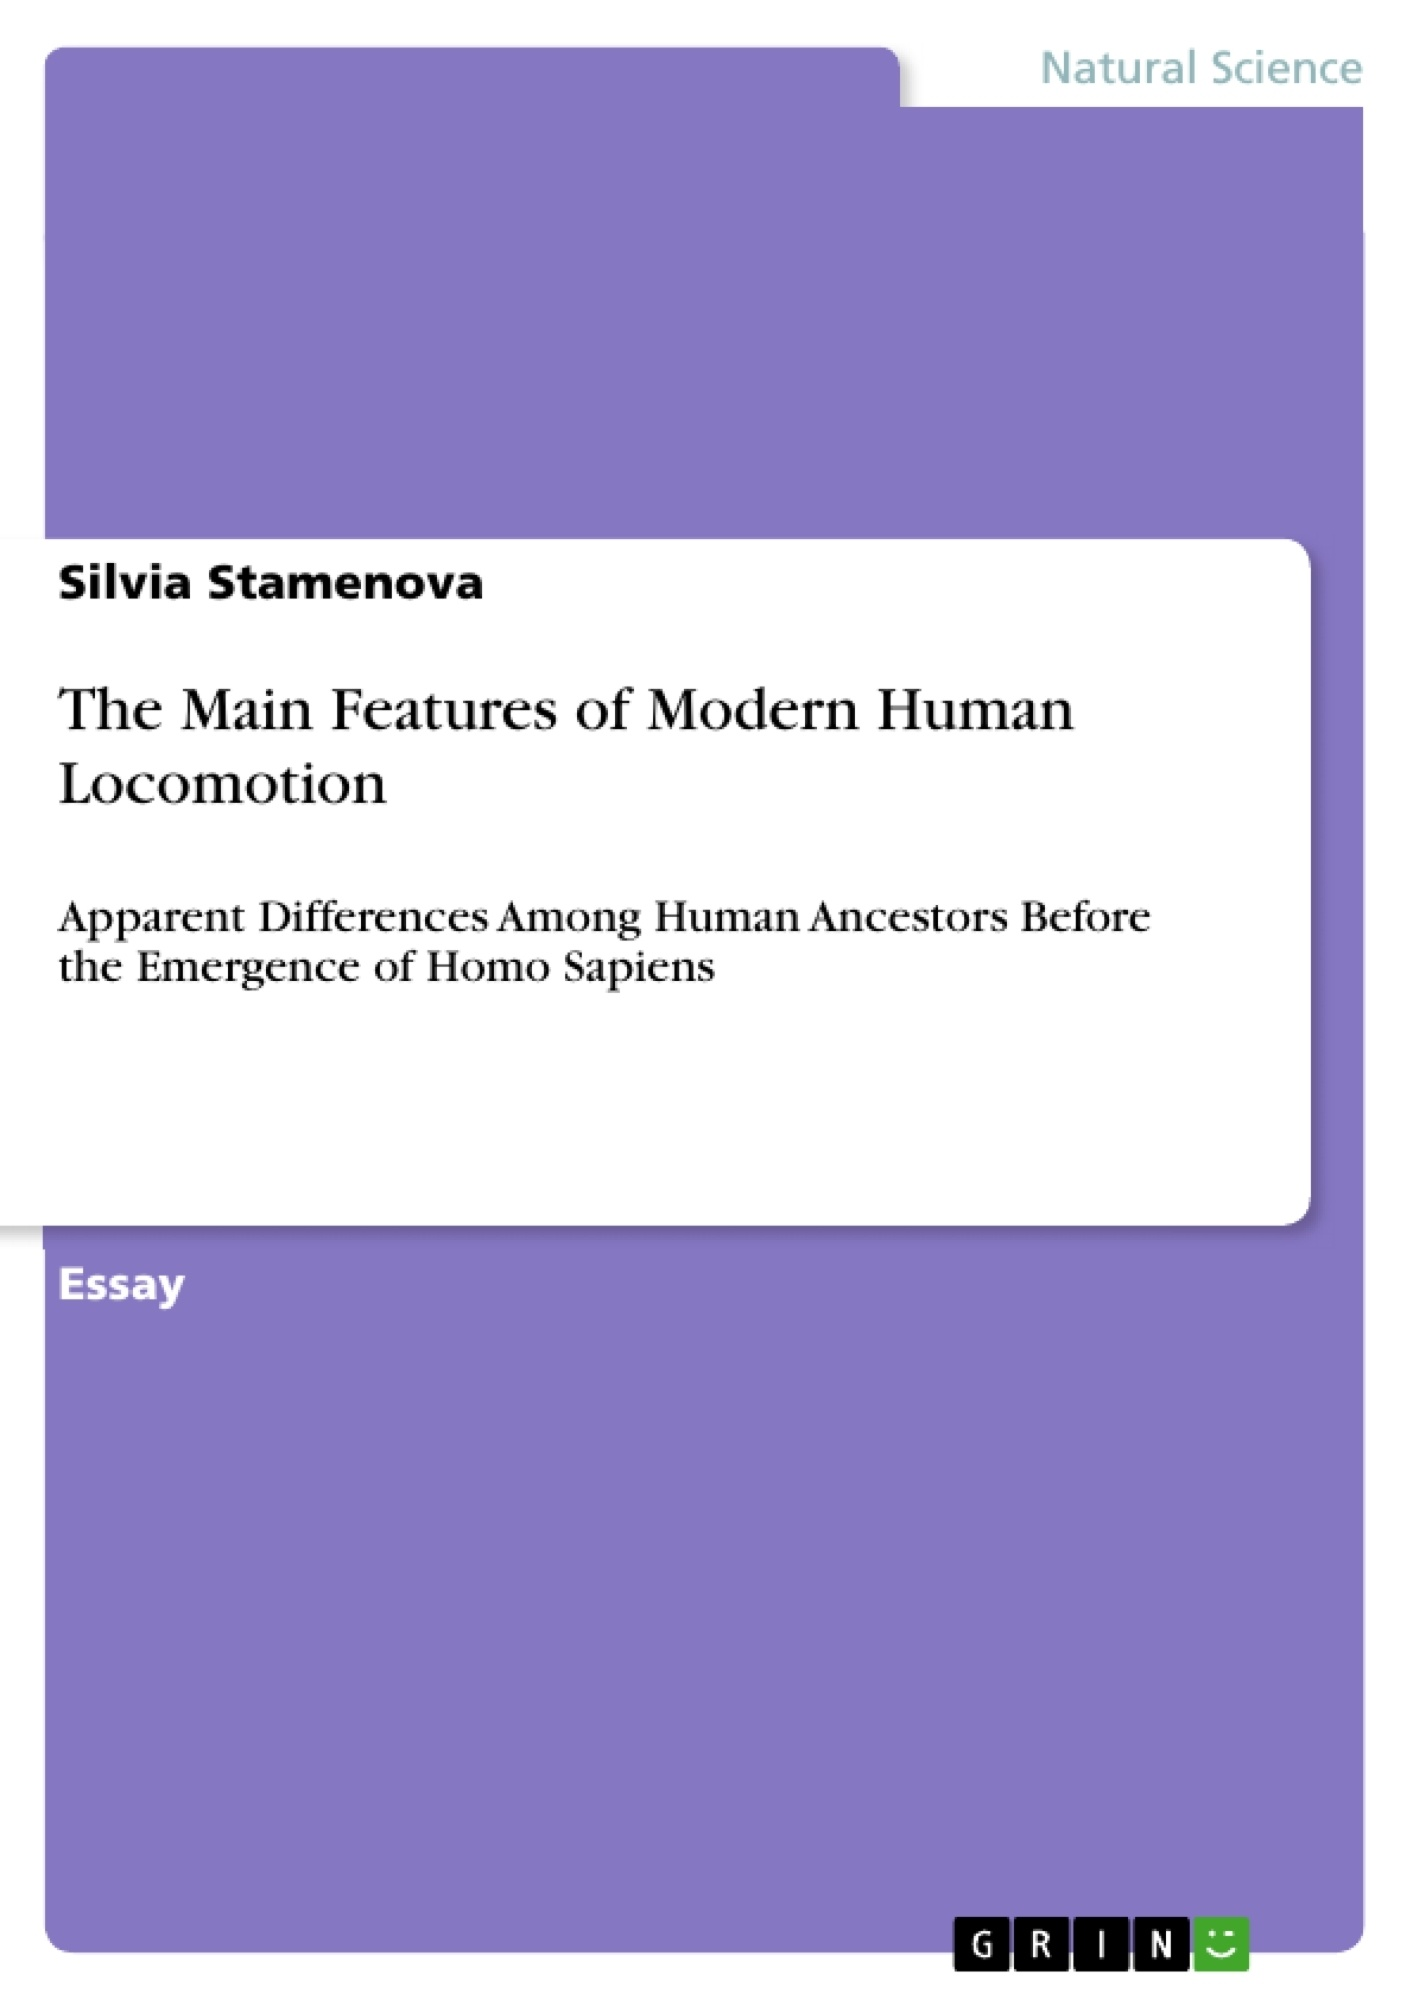 Title: The Main Features of Modern Human Locomotion